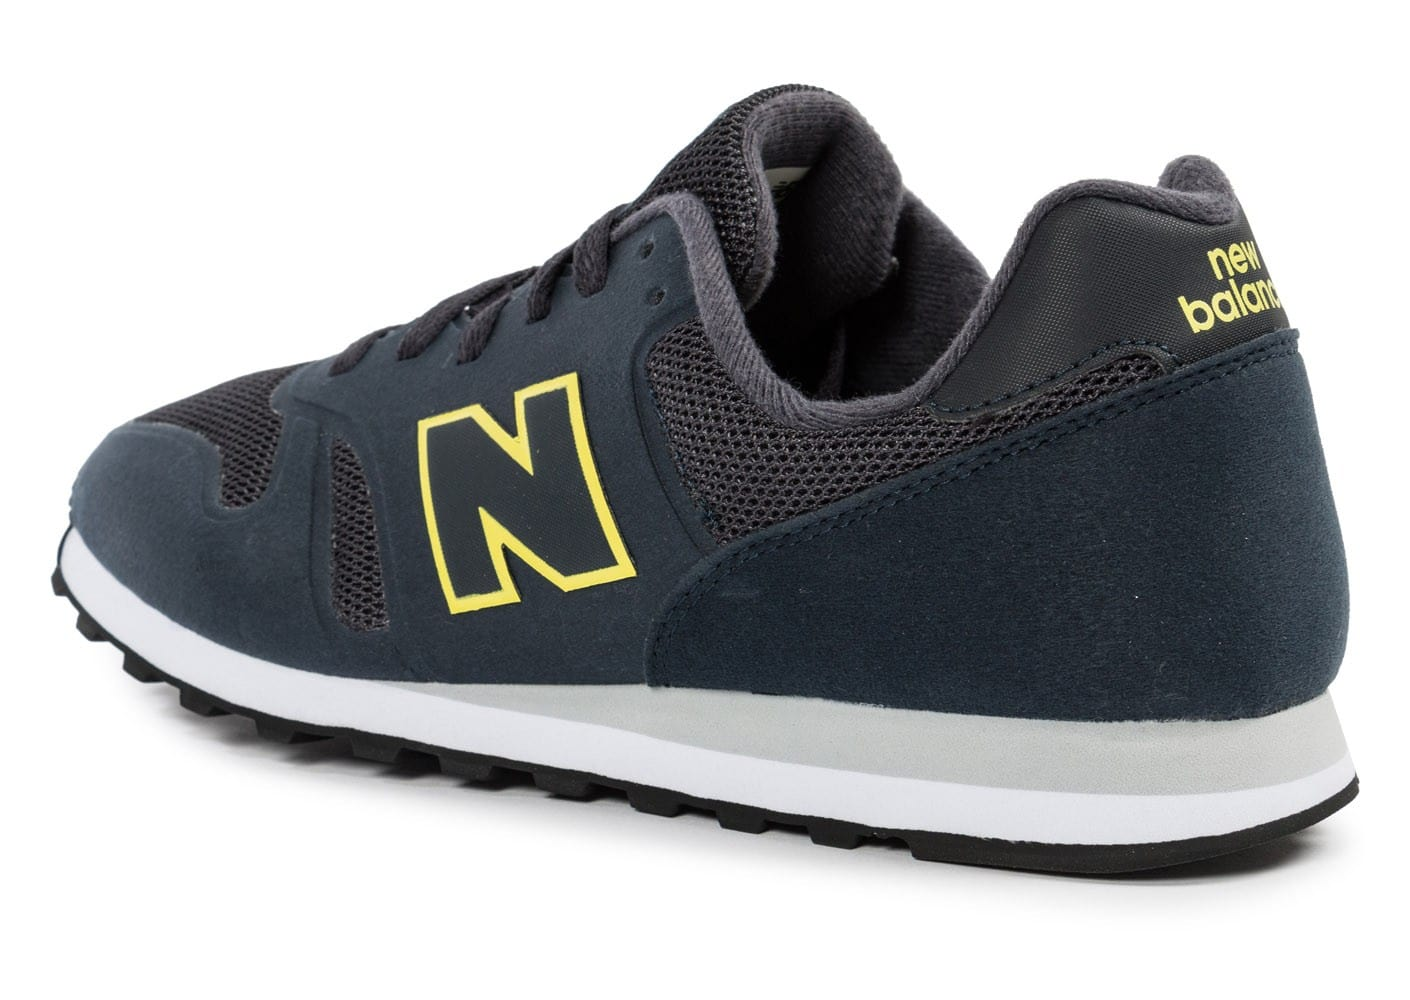 check out 7076f 8eaa4 0538-chaussures-new-balance-md373-ny-bleu-marine-vue-arriere 1.jpg